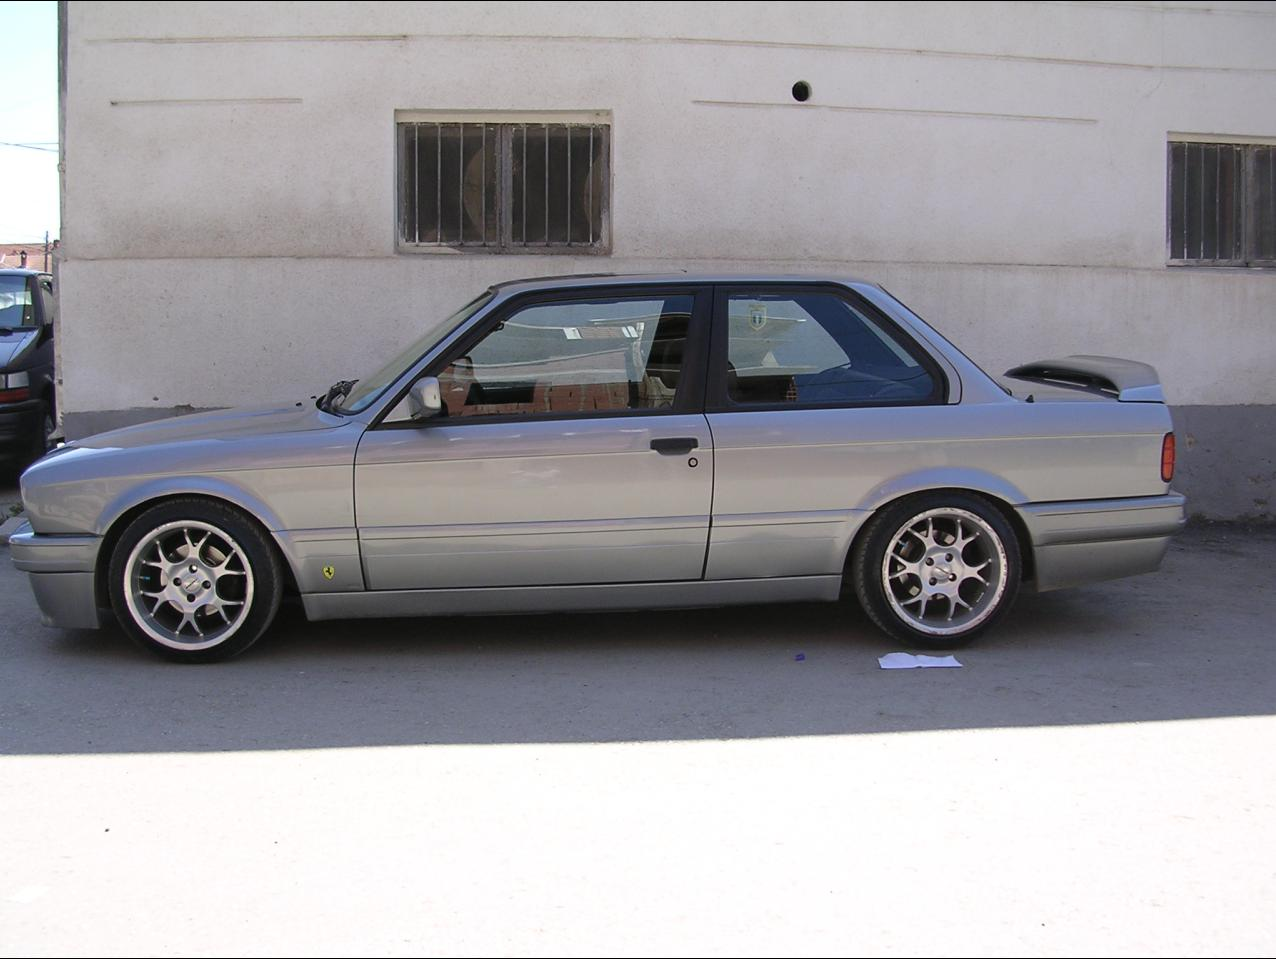 BMW 3 series 325is 1991 photo - 4